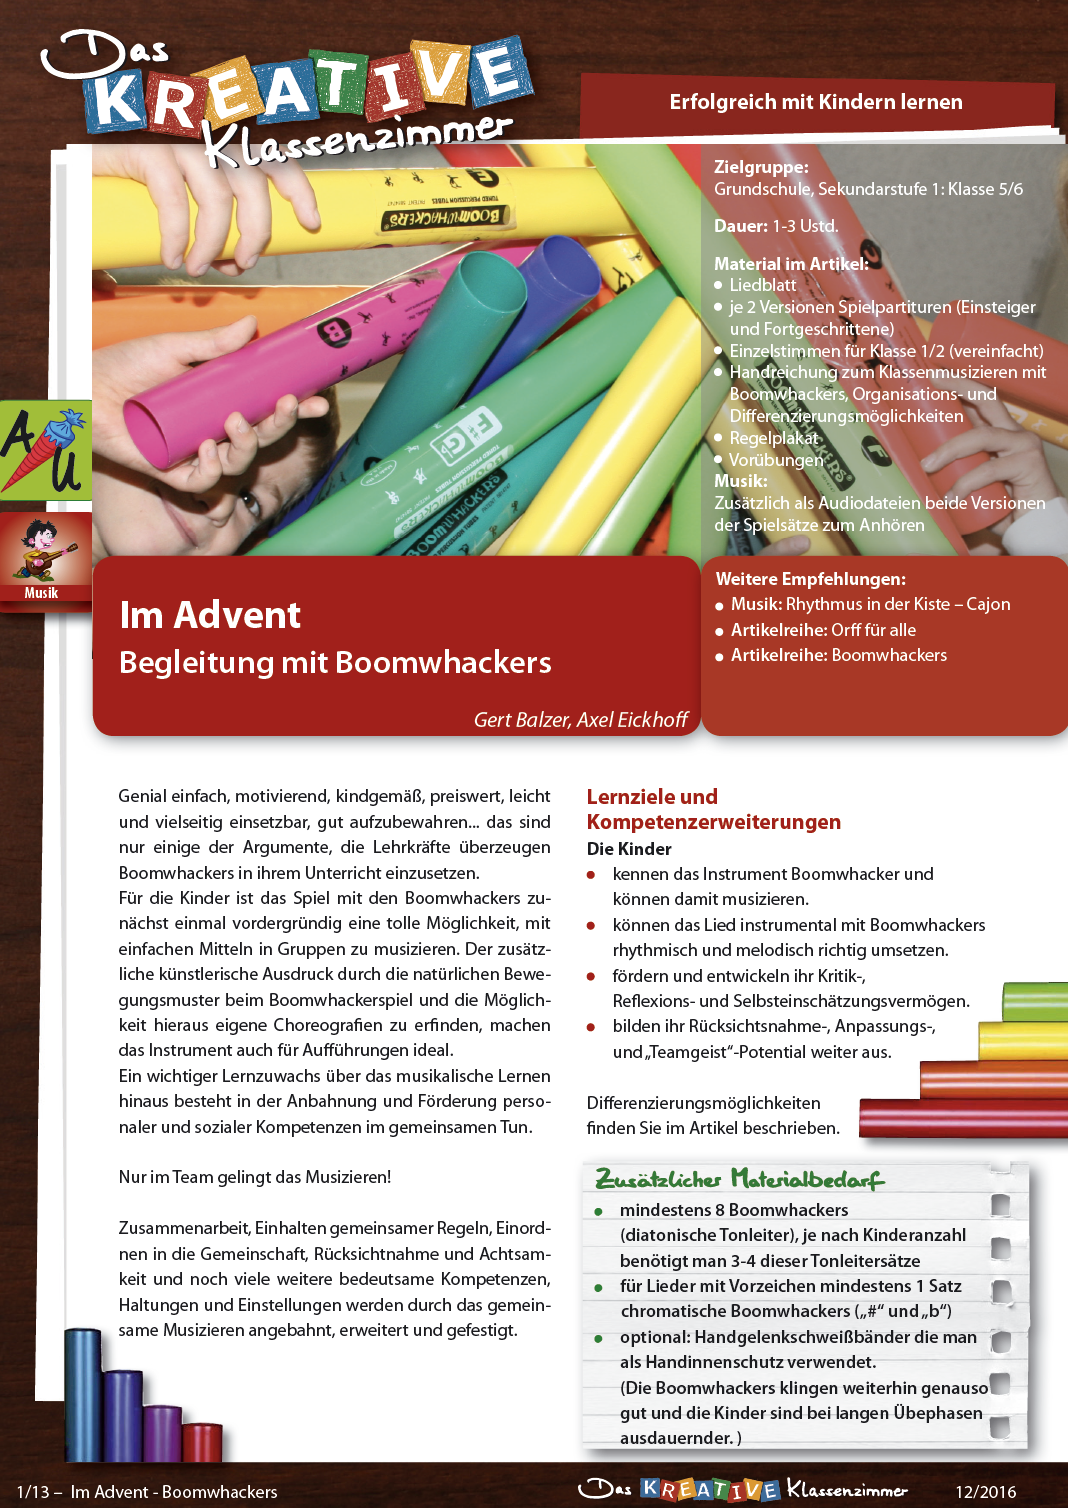 Im Advent - Boomwhackers